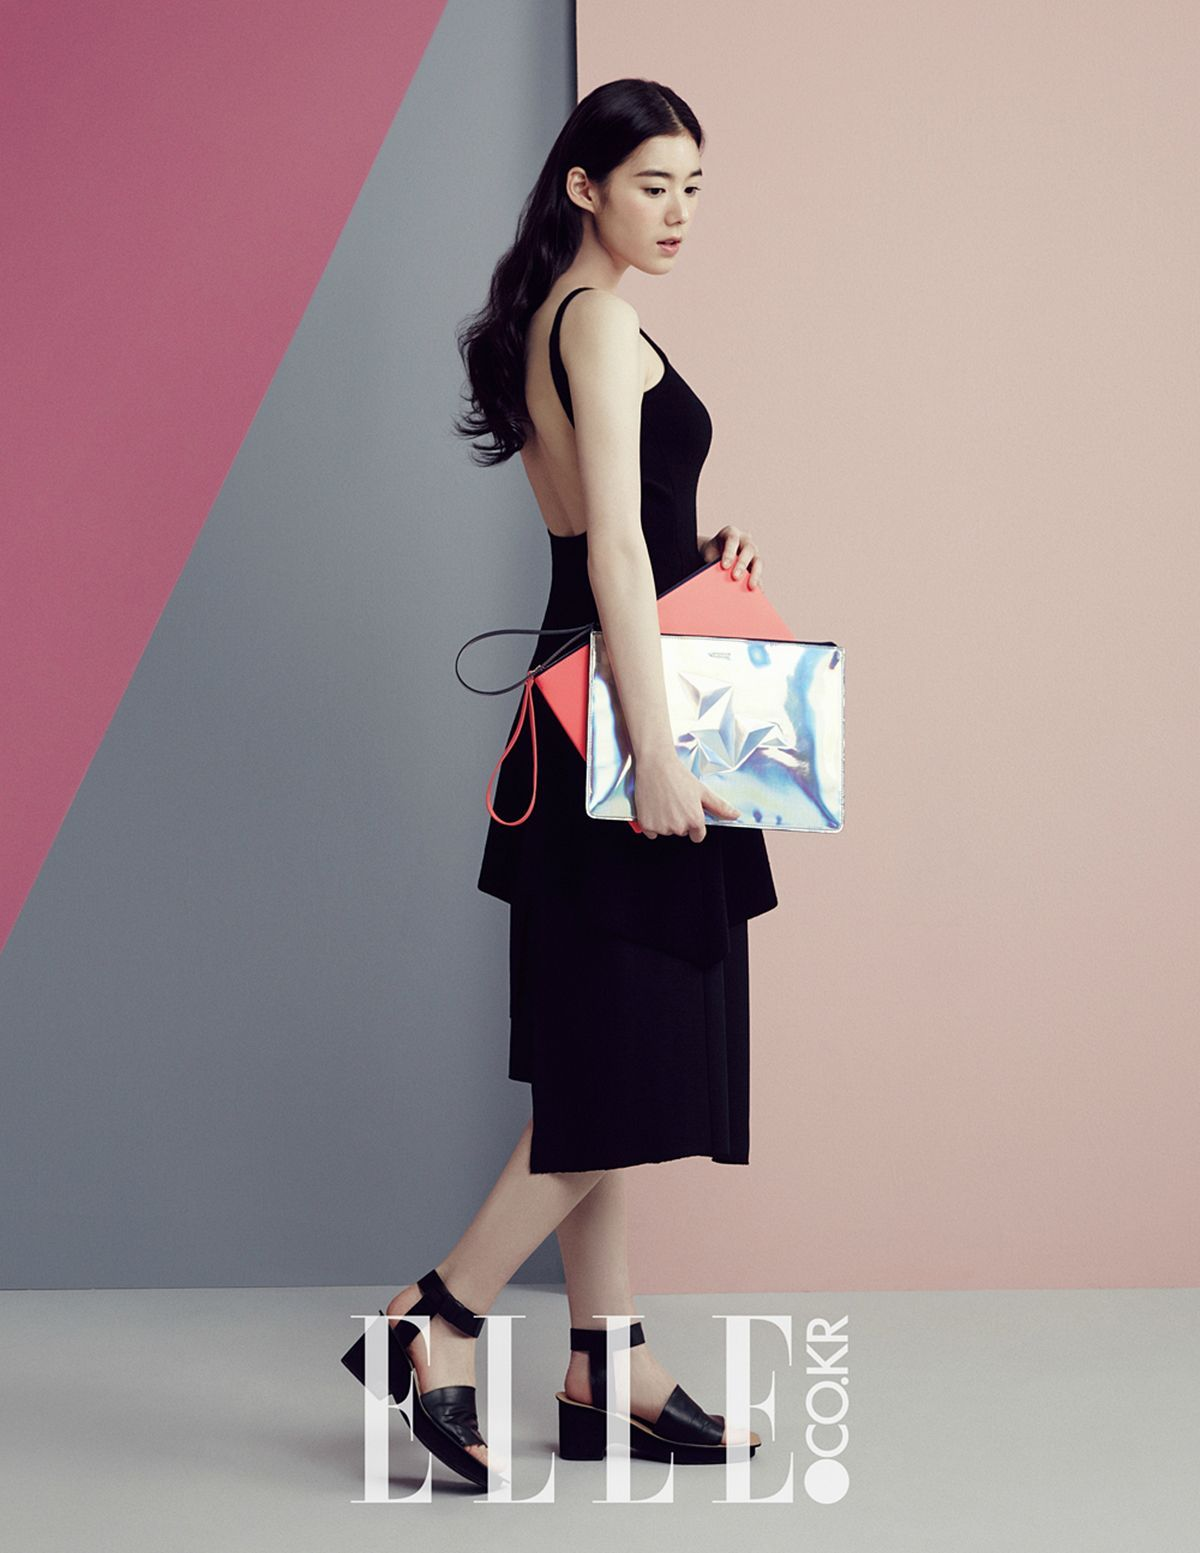 Jung Eun Chae - Elle Magazine March Issue '15